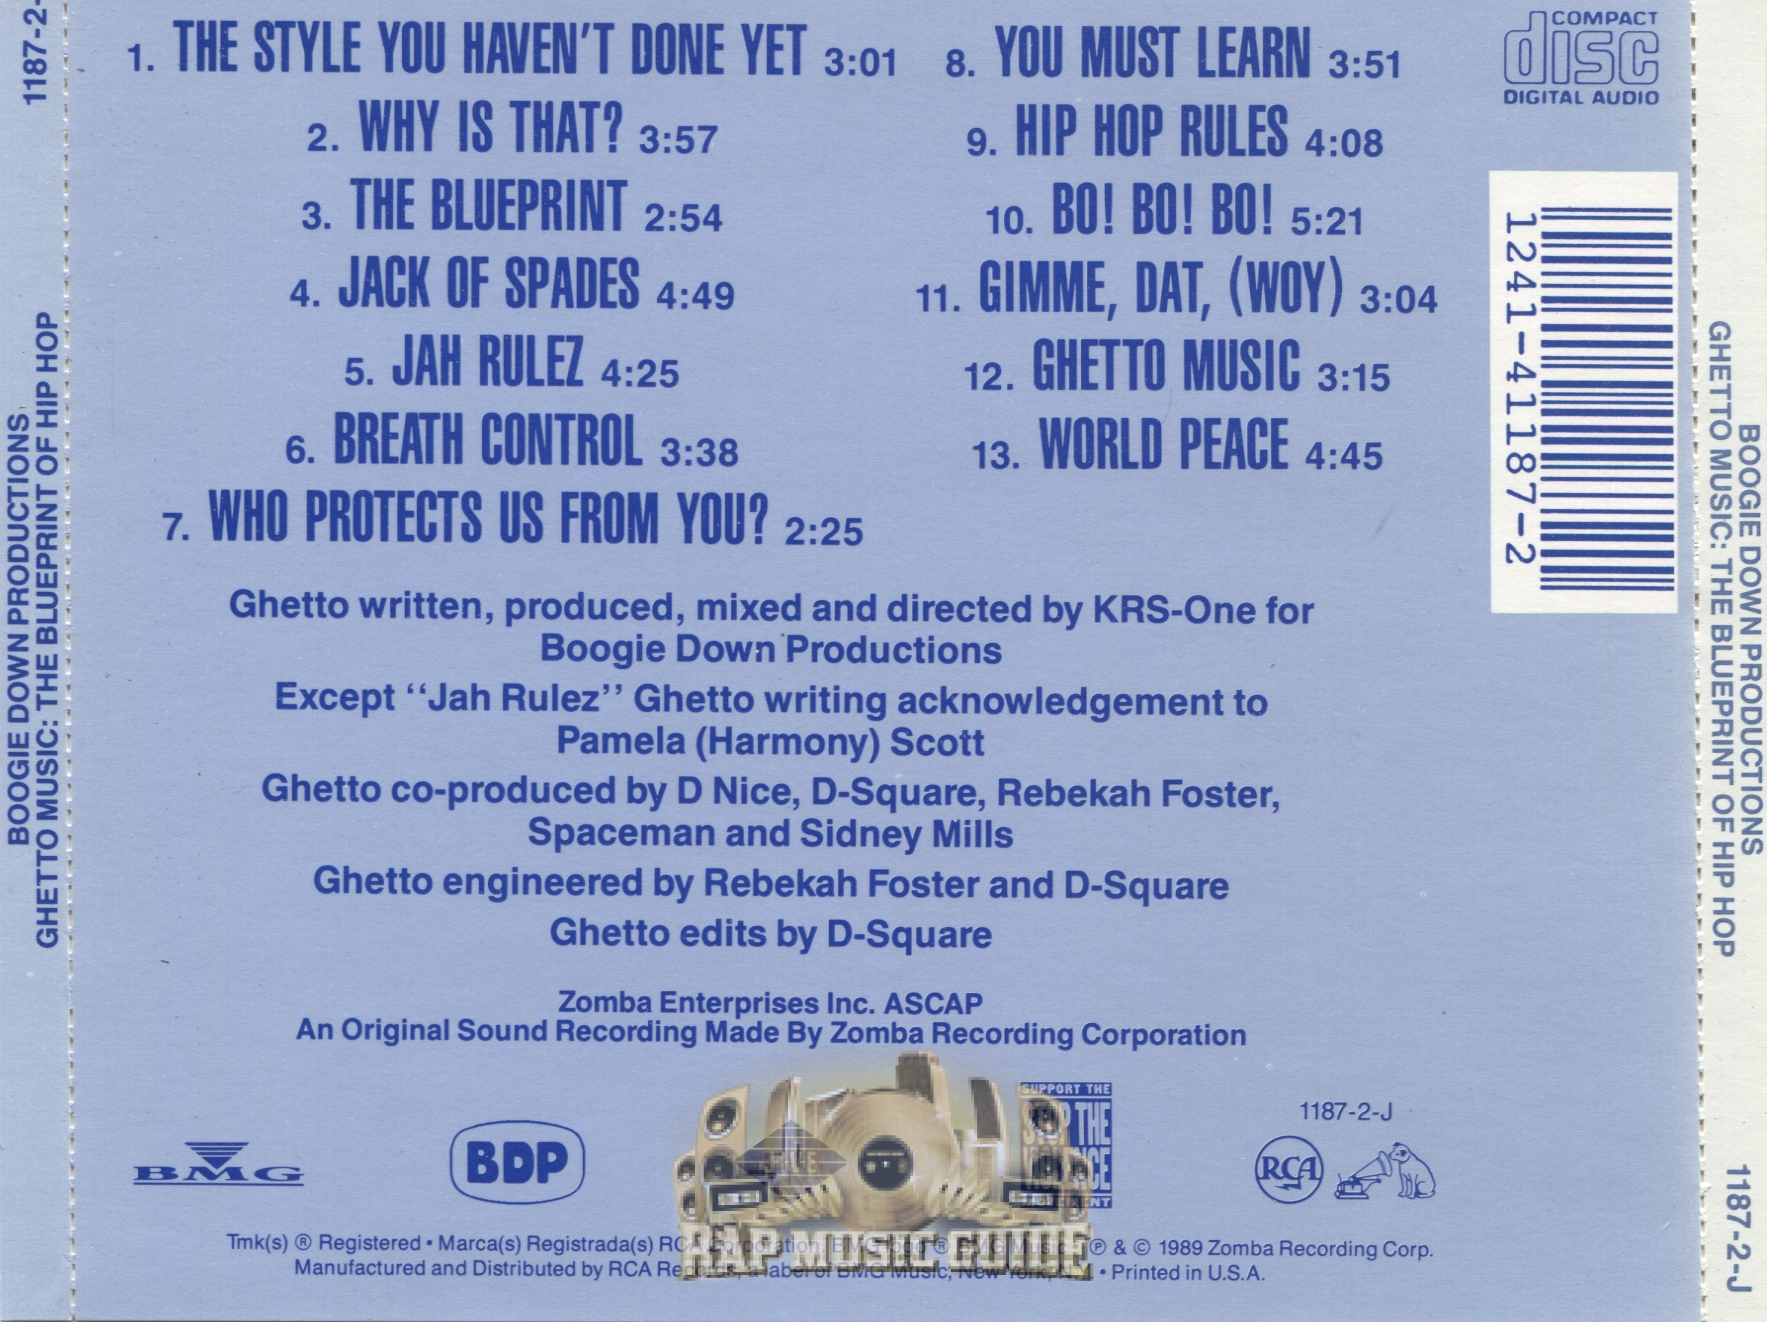 Boogie down productions ghetto music the blueprint of hip hop additional artwork malvernweather Images